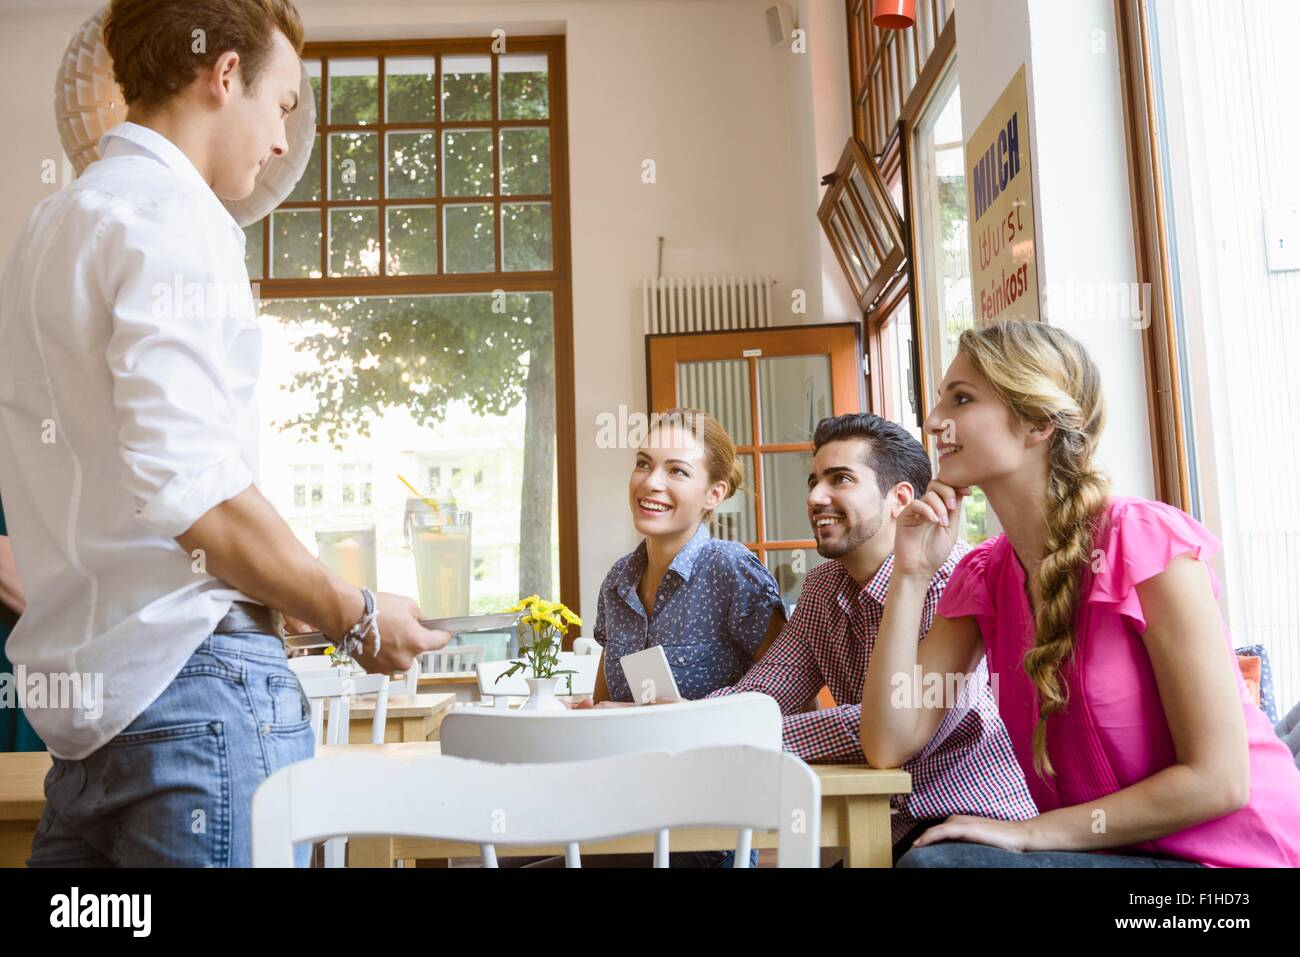 Waiter taking order from young adult friends in cafe - Stock Image